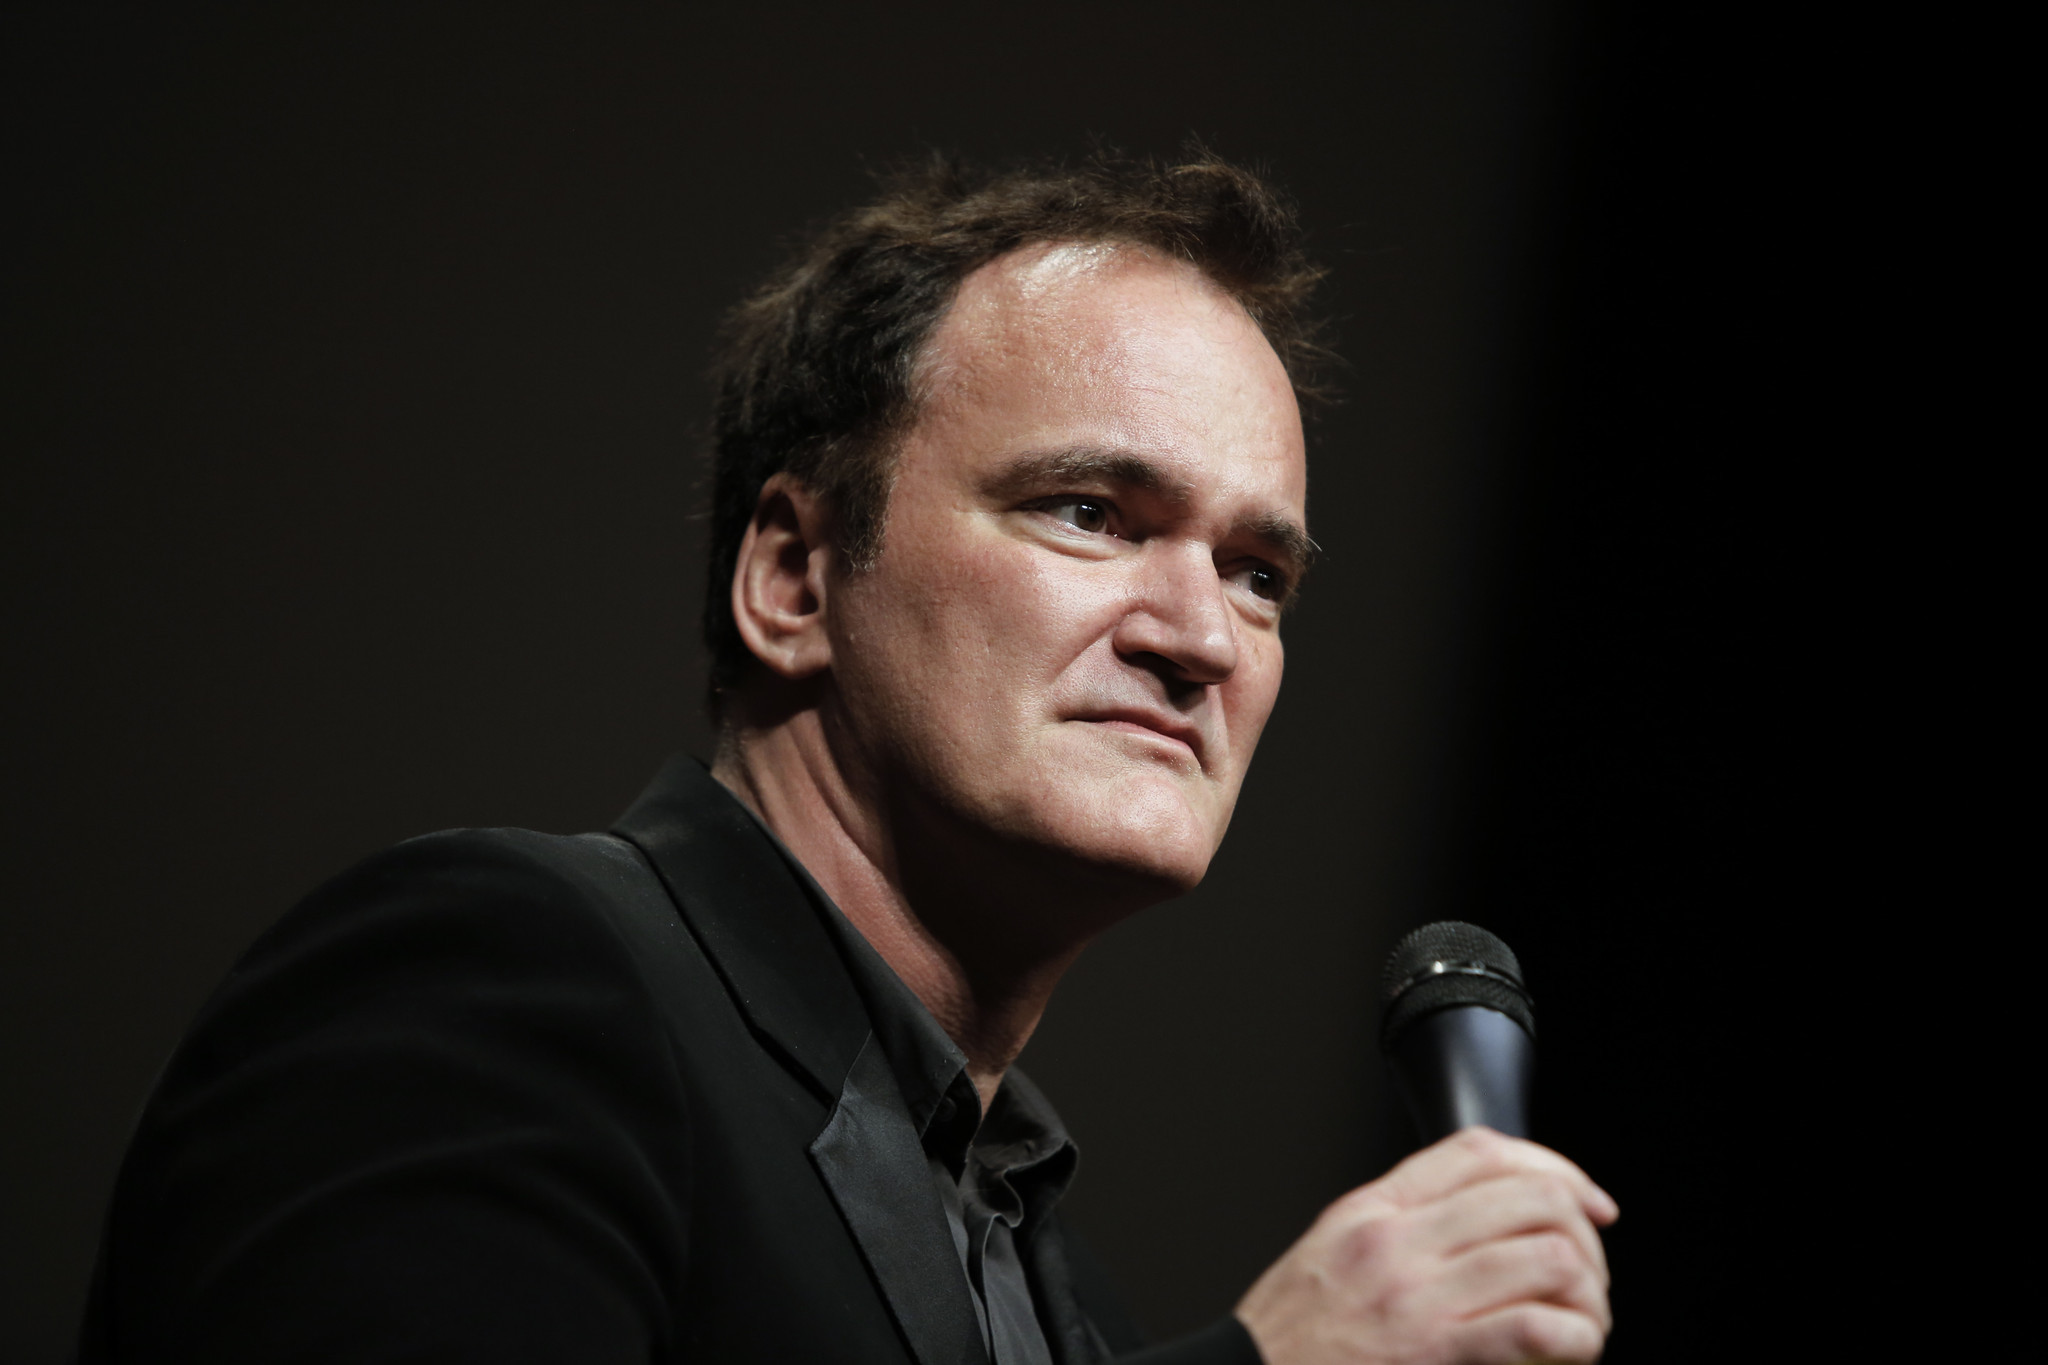 Quentin Tarantino Exploring New Movie On Manson Family